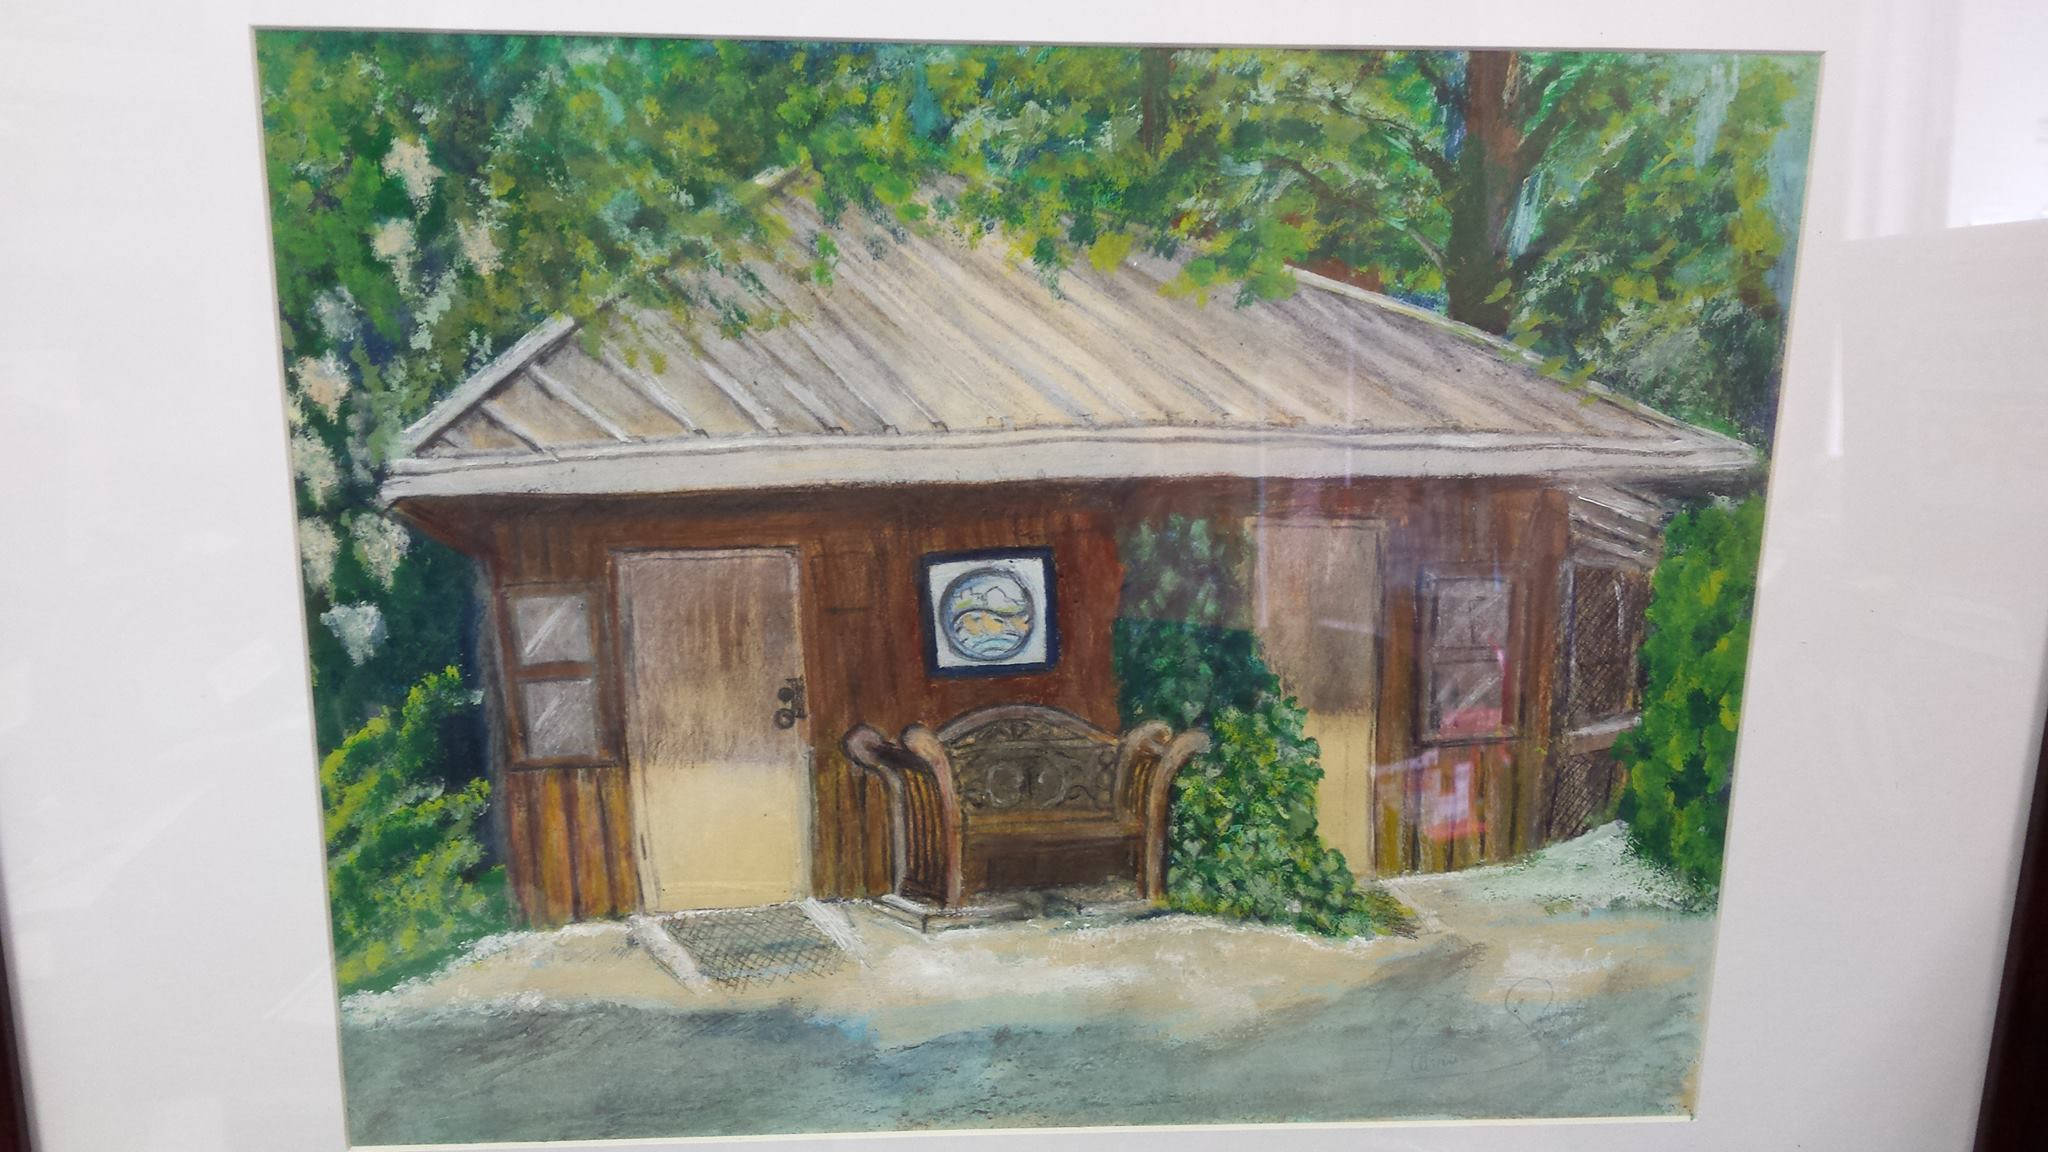 A painting by Patricia Gaspar of the Hoy Creek Hatchery adorns our office wall.